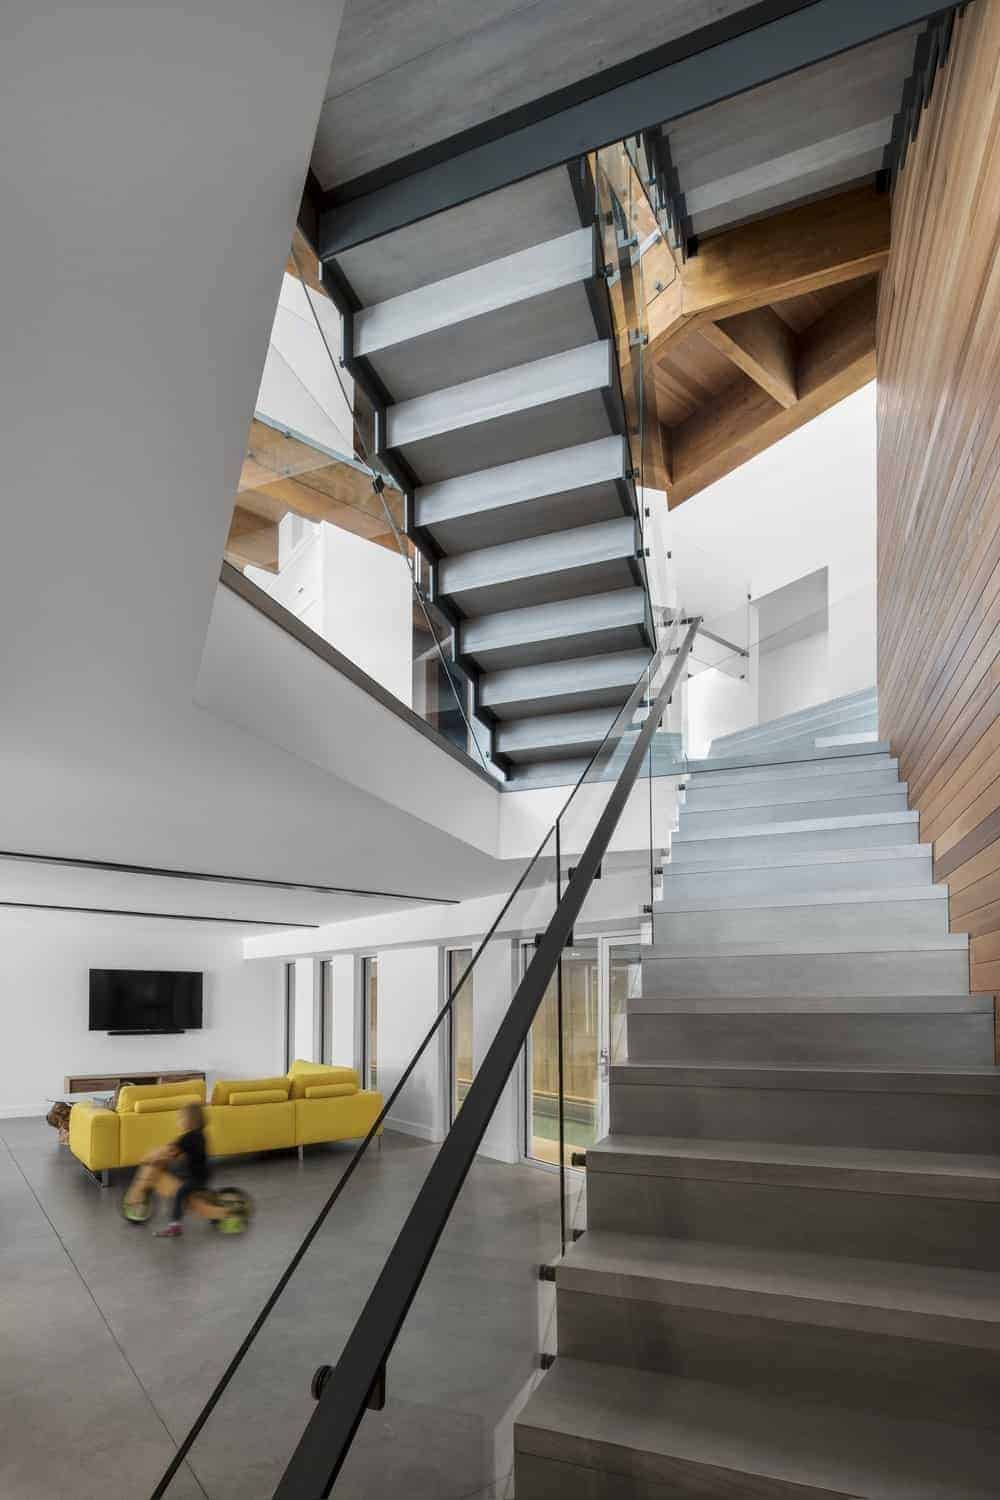 Half-turn staircase with hardwood walls and steel with glass rail.